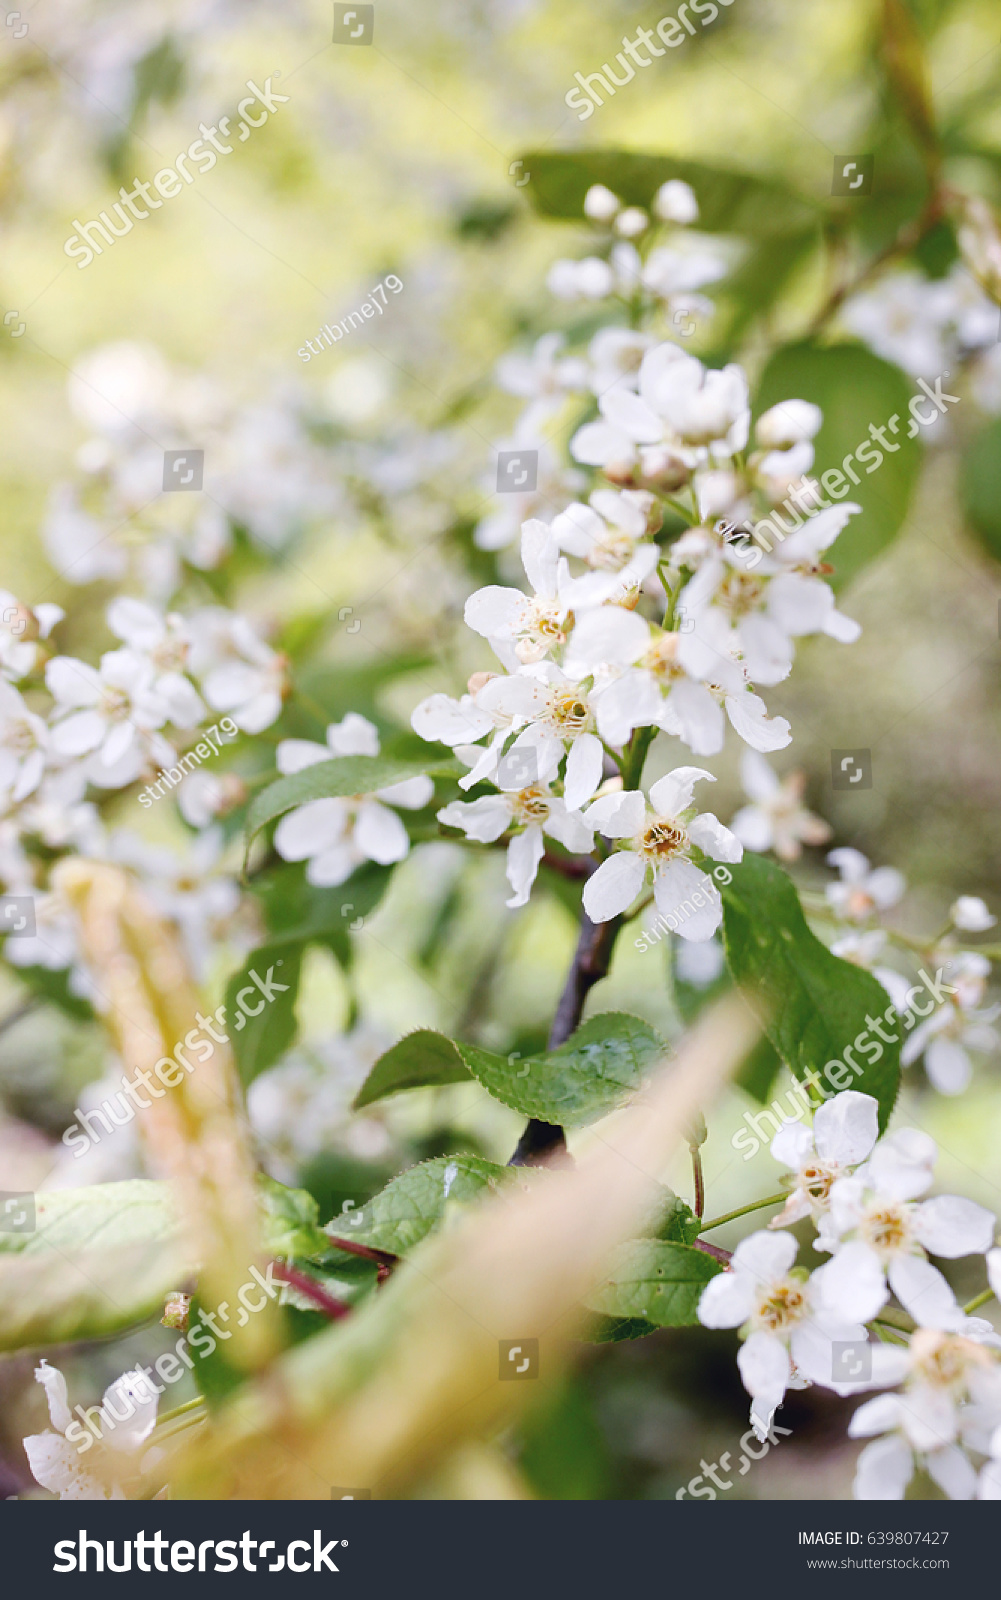 Beautiful Spring Picture Of Tree In Bloom With Tiny White Flowers On